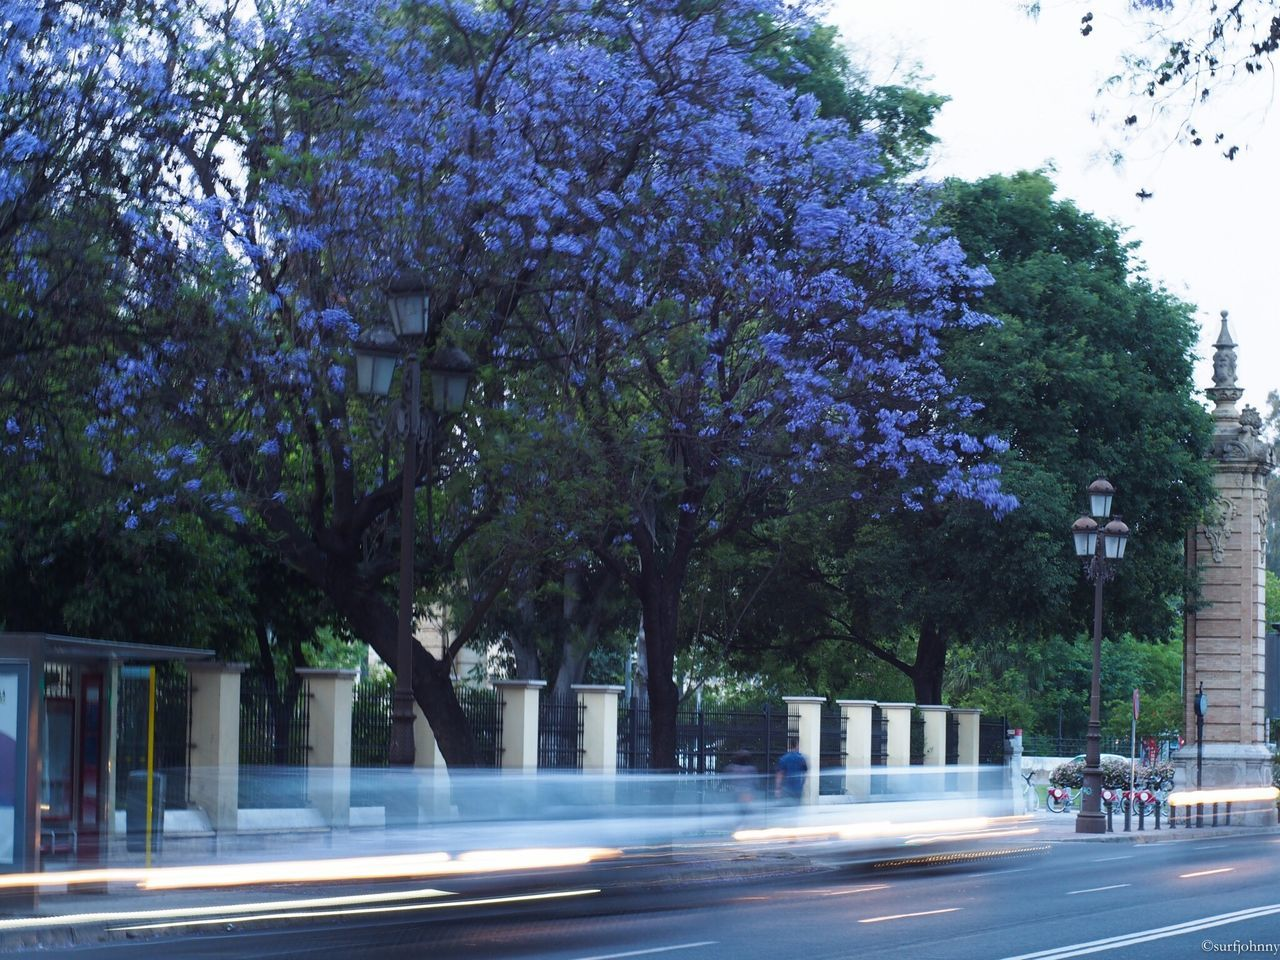 tree, road, growth, outdoors, day, transportation, nature, branch, springtime, no people, flower, city, beauty in nature, sky